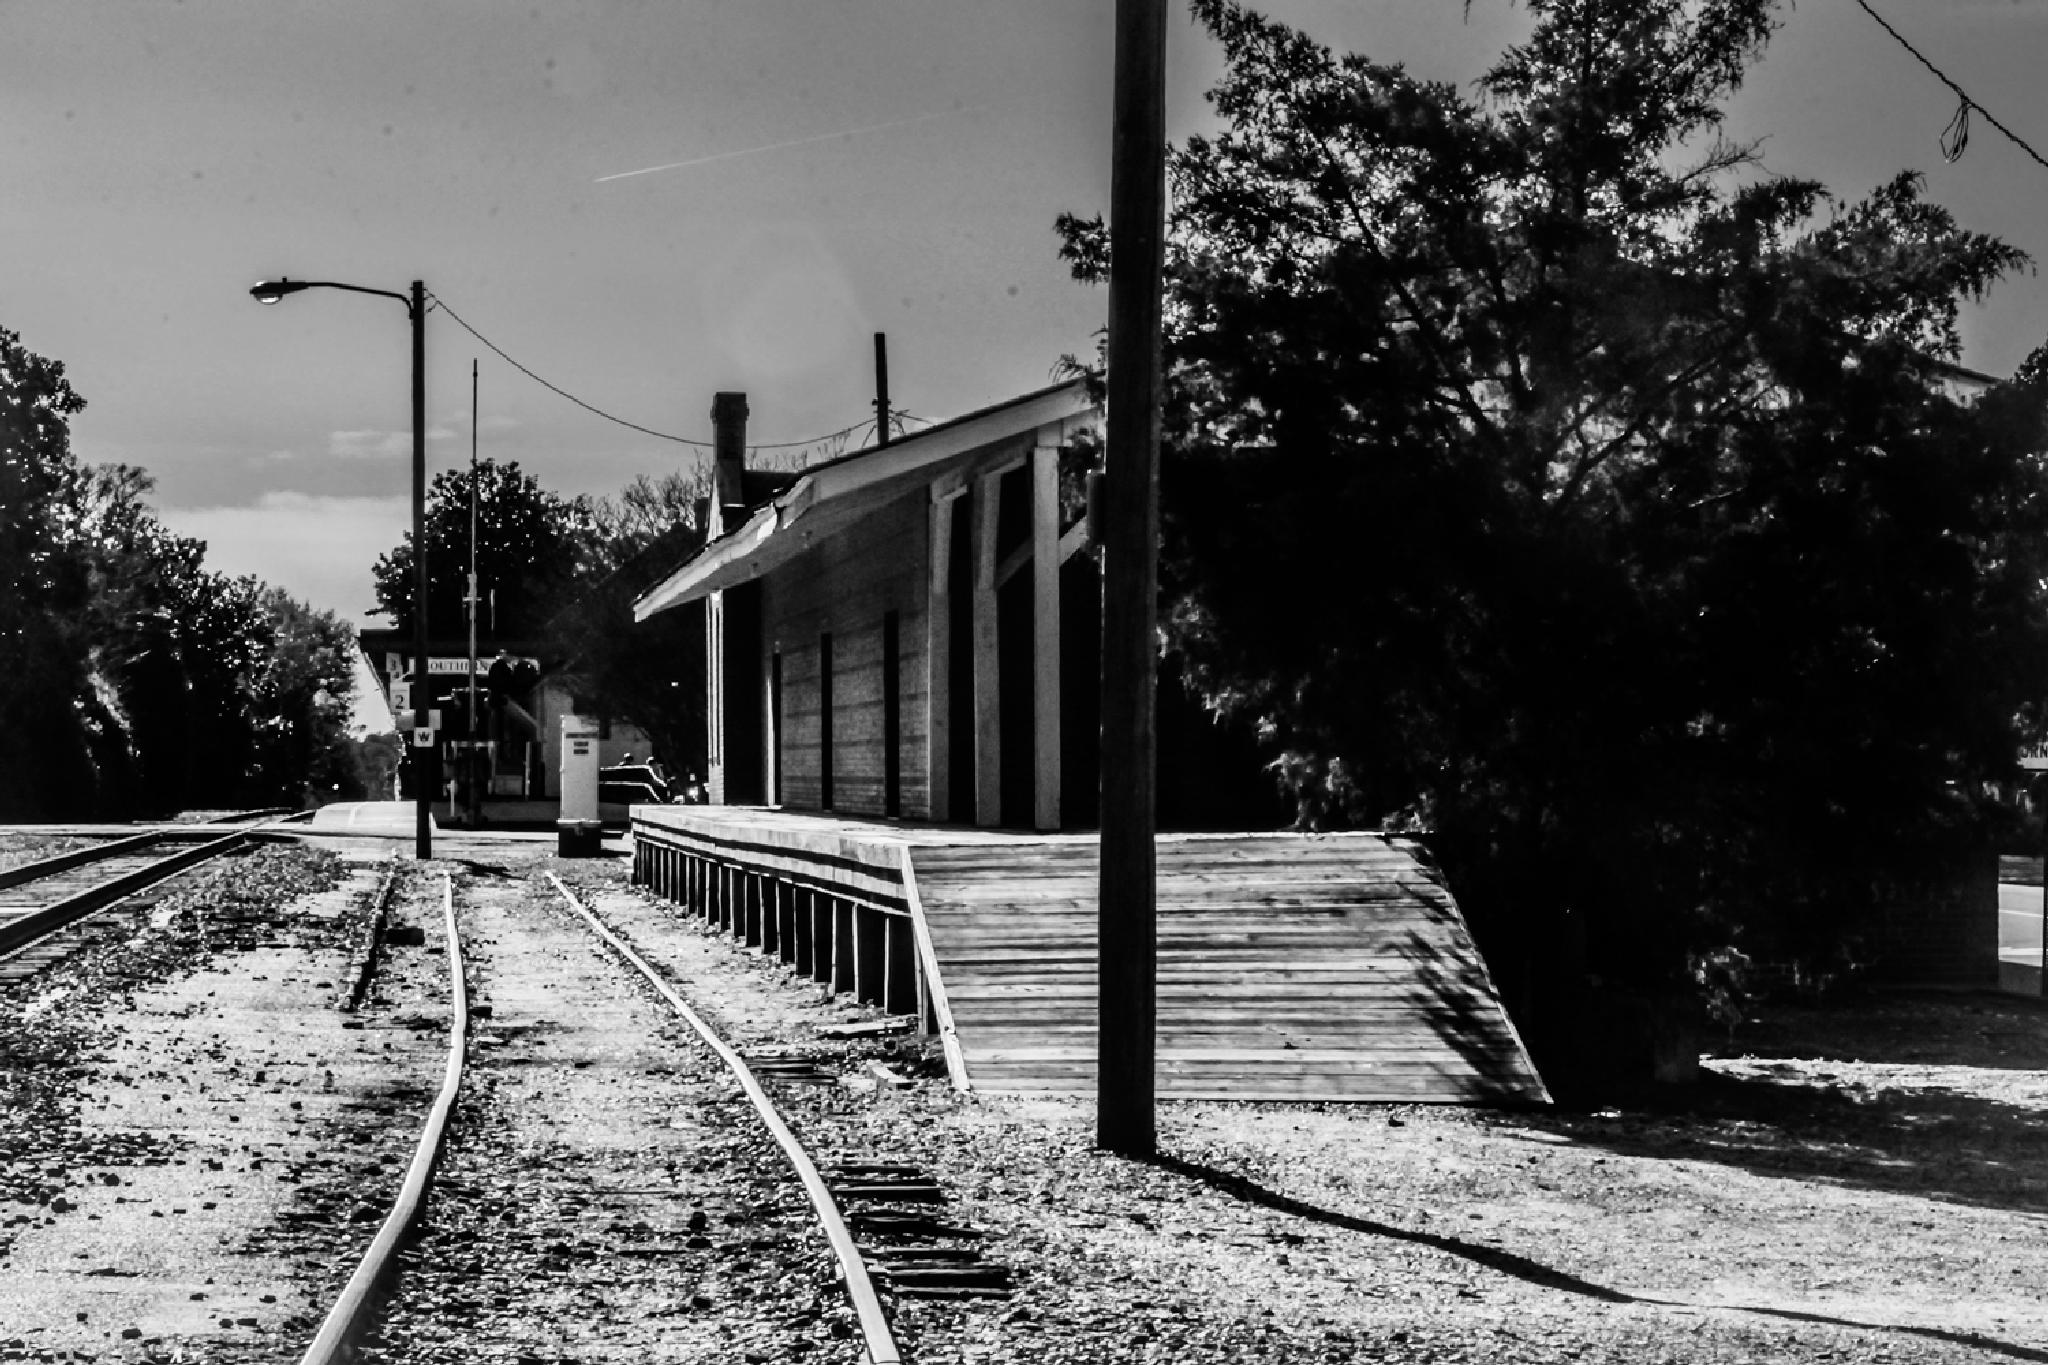 The Old Freight Station by NaturesVeiwsPhotography